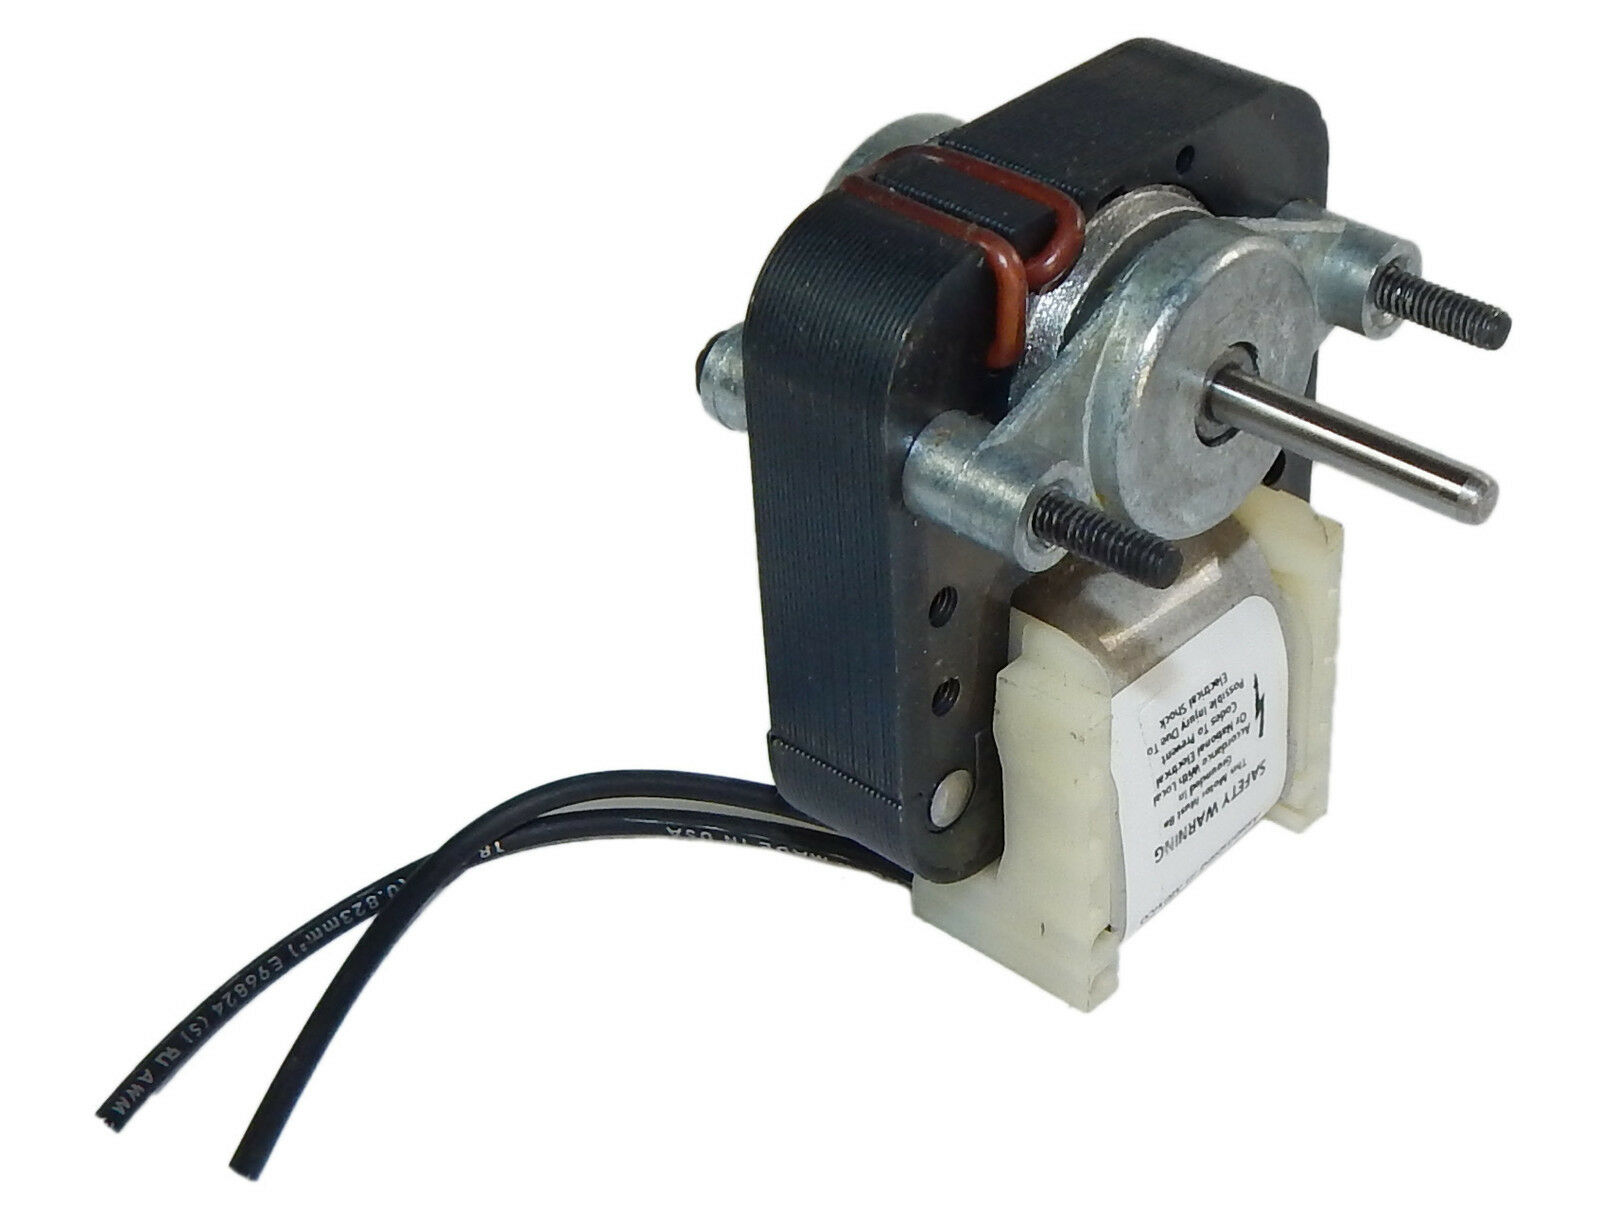 hight resolution of fasco c frame vent fan motor 43 amps 3000rpm 115 volts k130 cw rotation